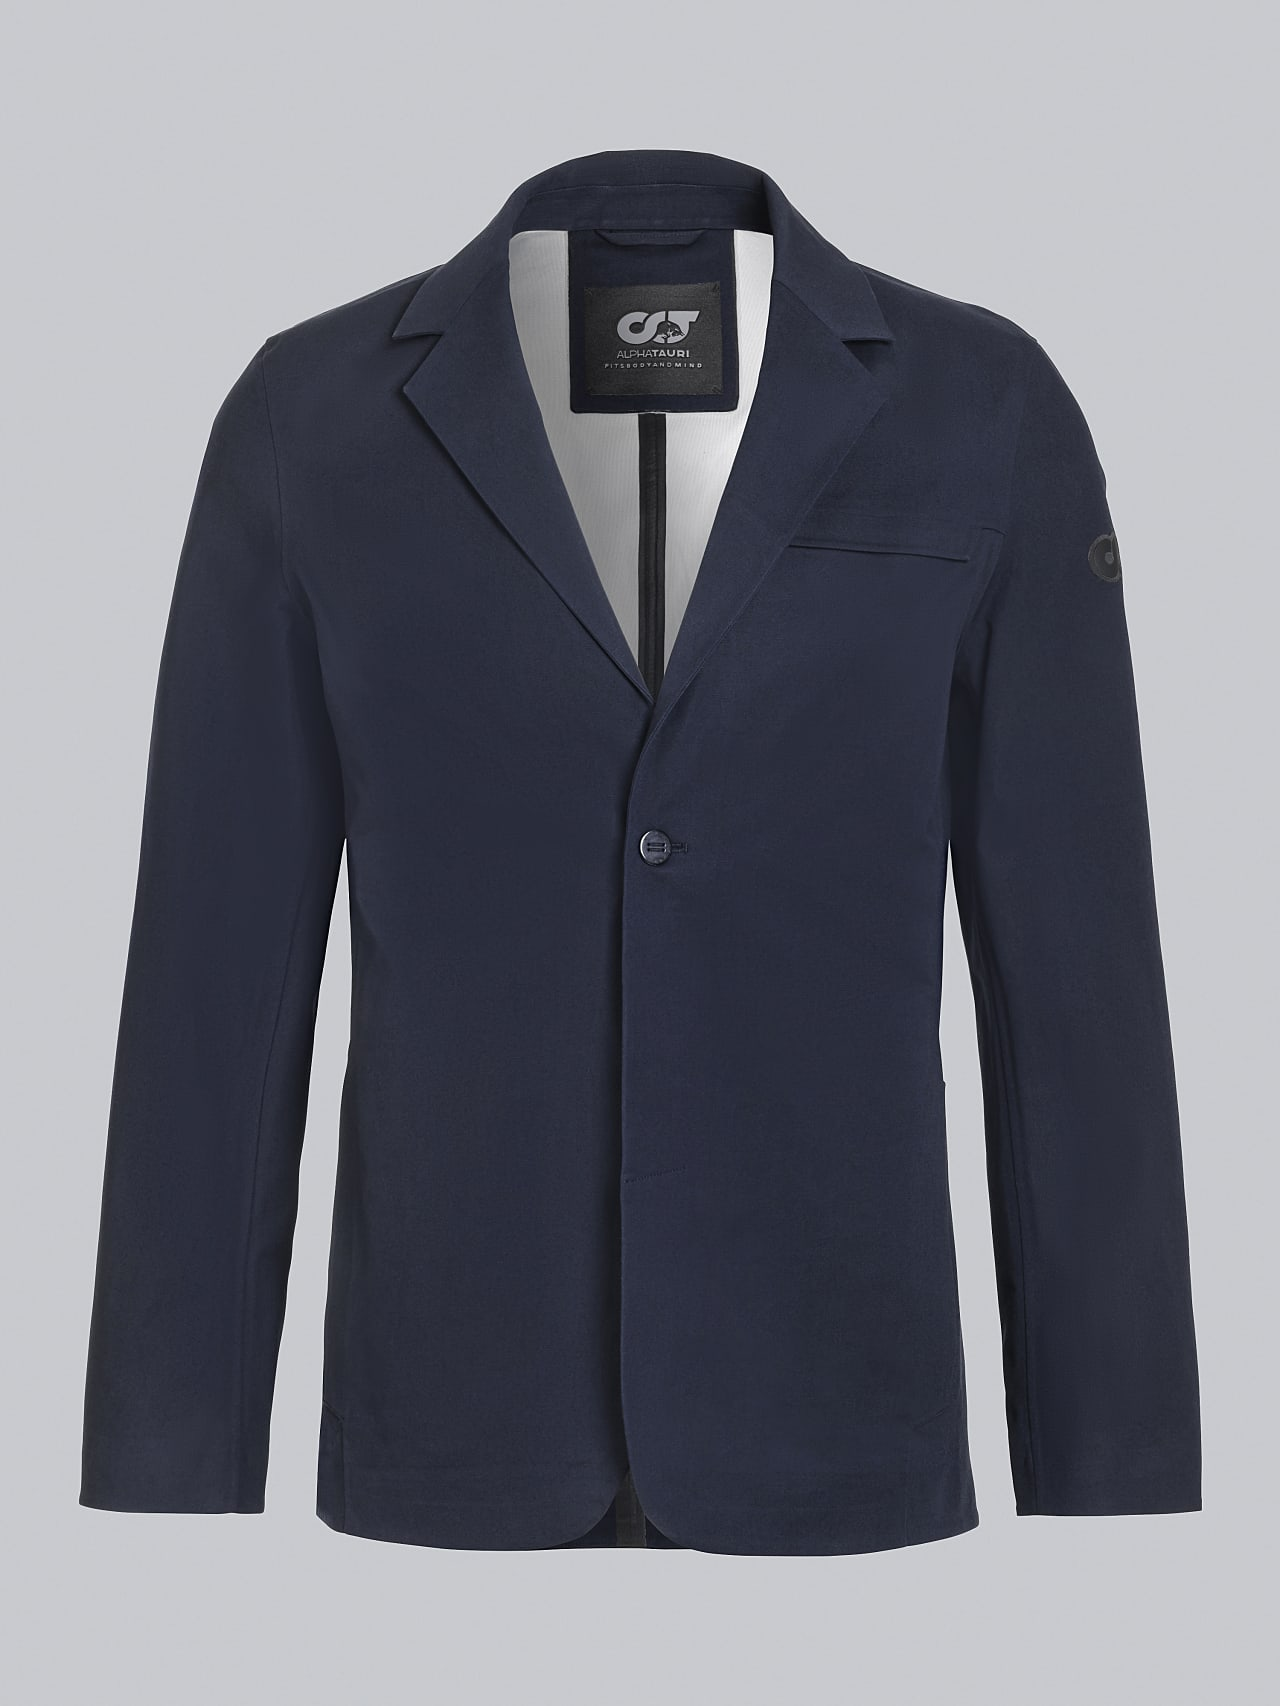 OBOSS V3.Y5.02 Packable and Waterproof Blazer navy Back Alpha Tauri